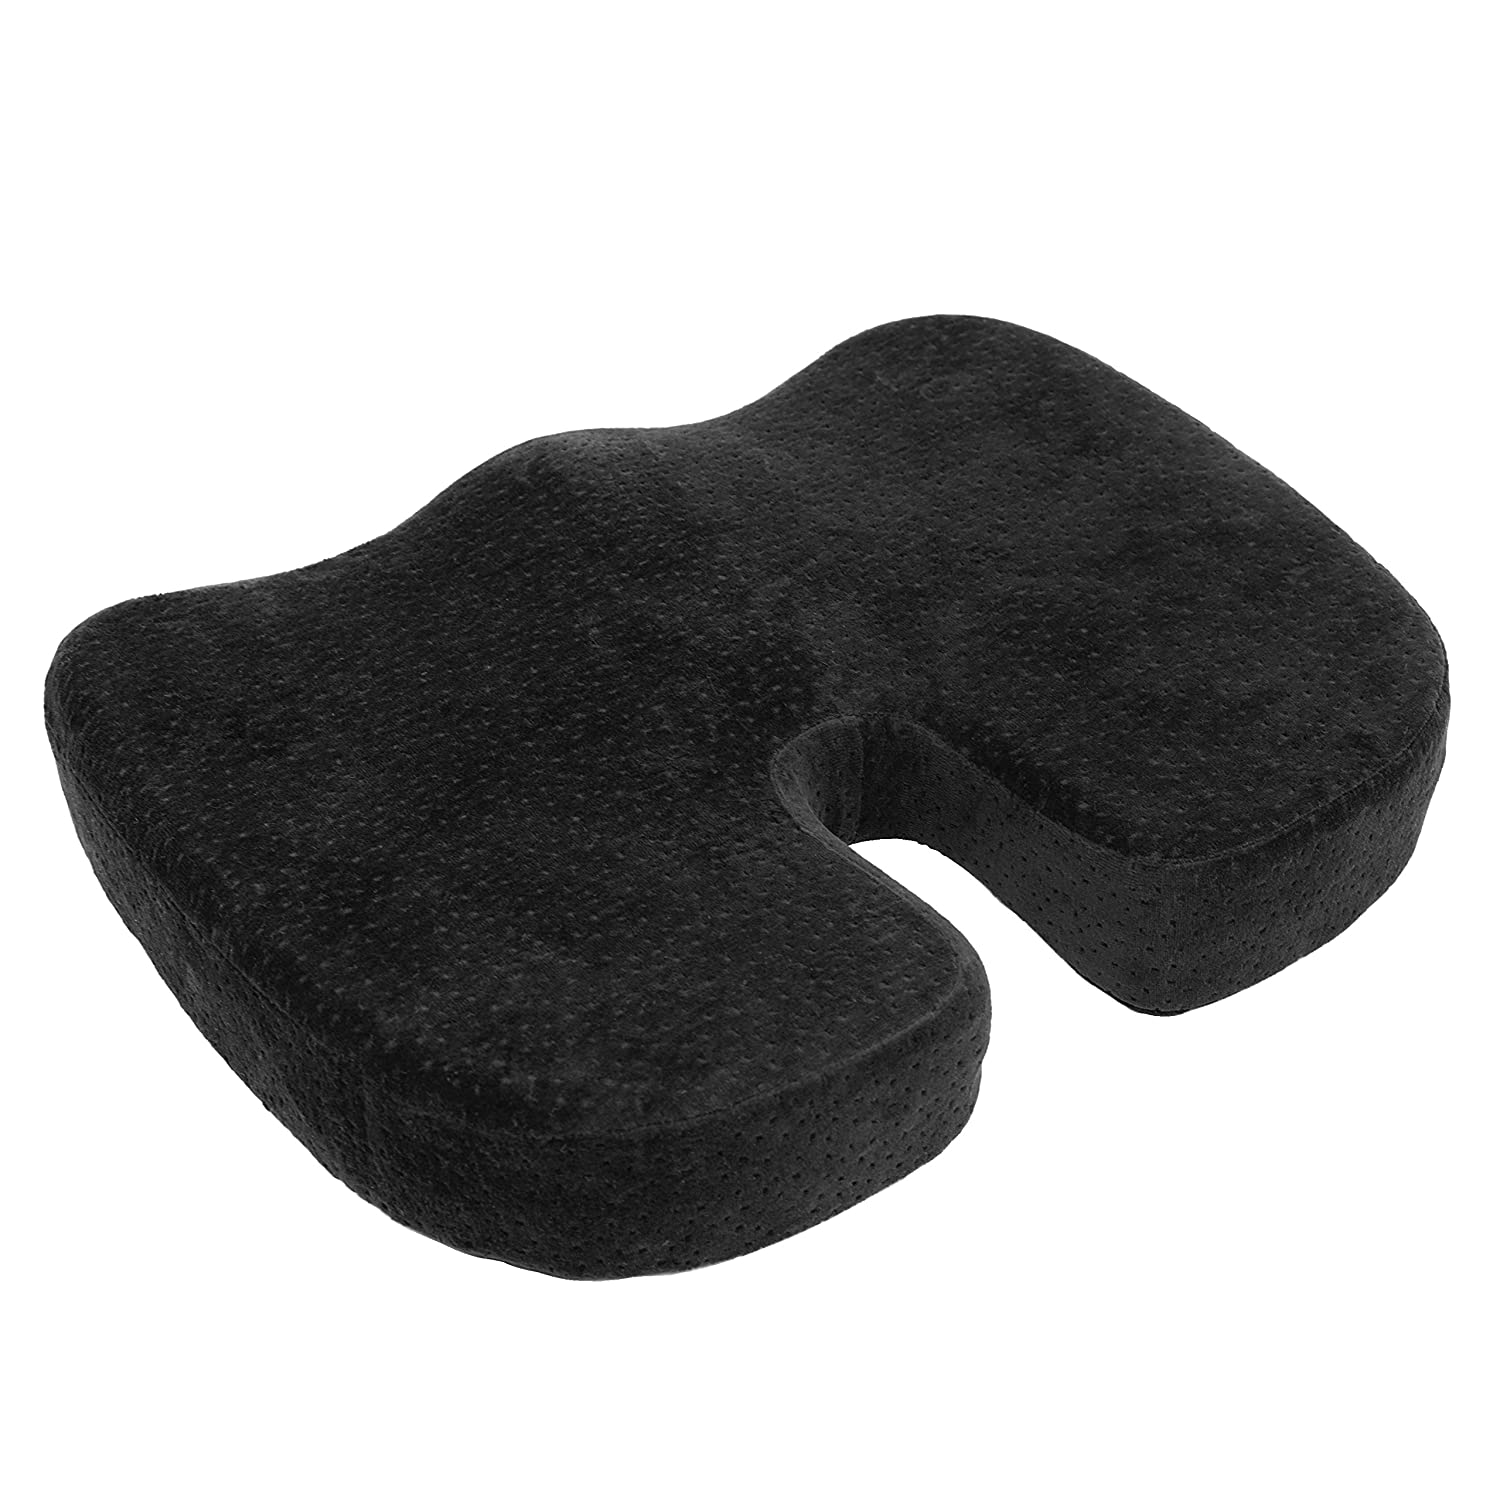 Aurora Health & Beauty AW203 Black Orthopedically Back Designed Memory Foam Coccyx Cushion Seat   B0711DPMM1